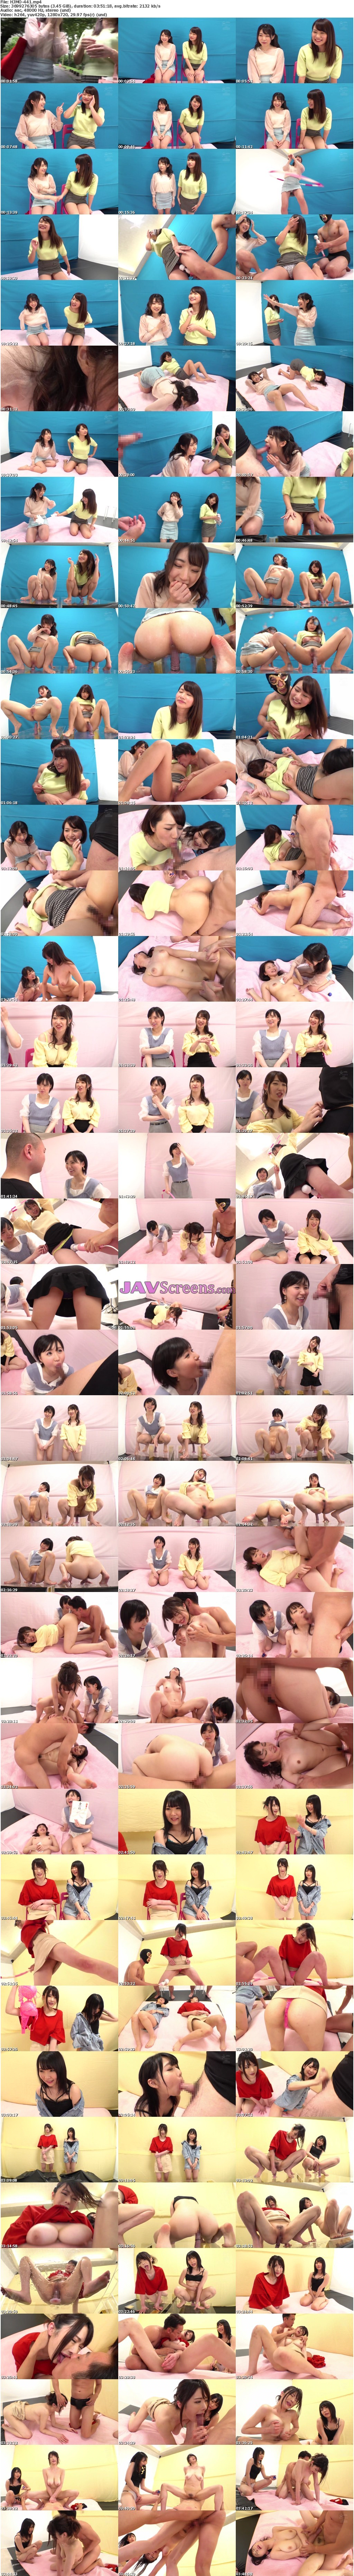 HJMO-441.jpg - JAV Screenshot